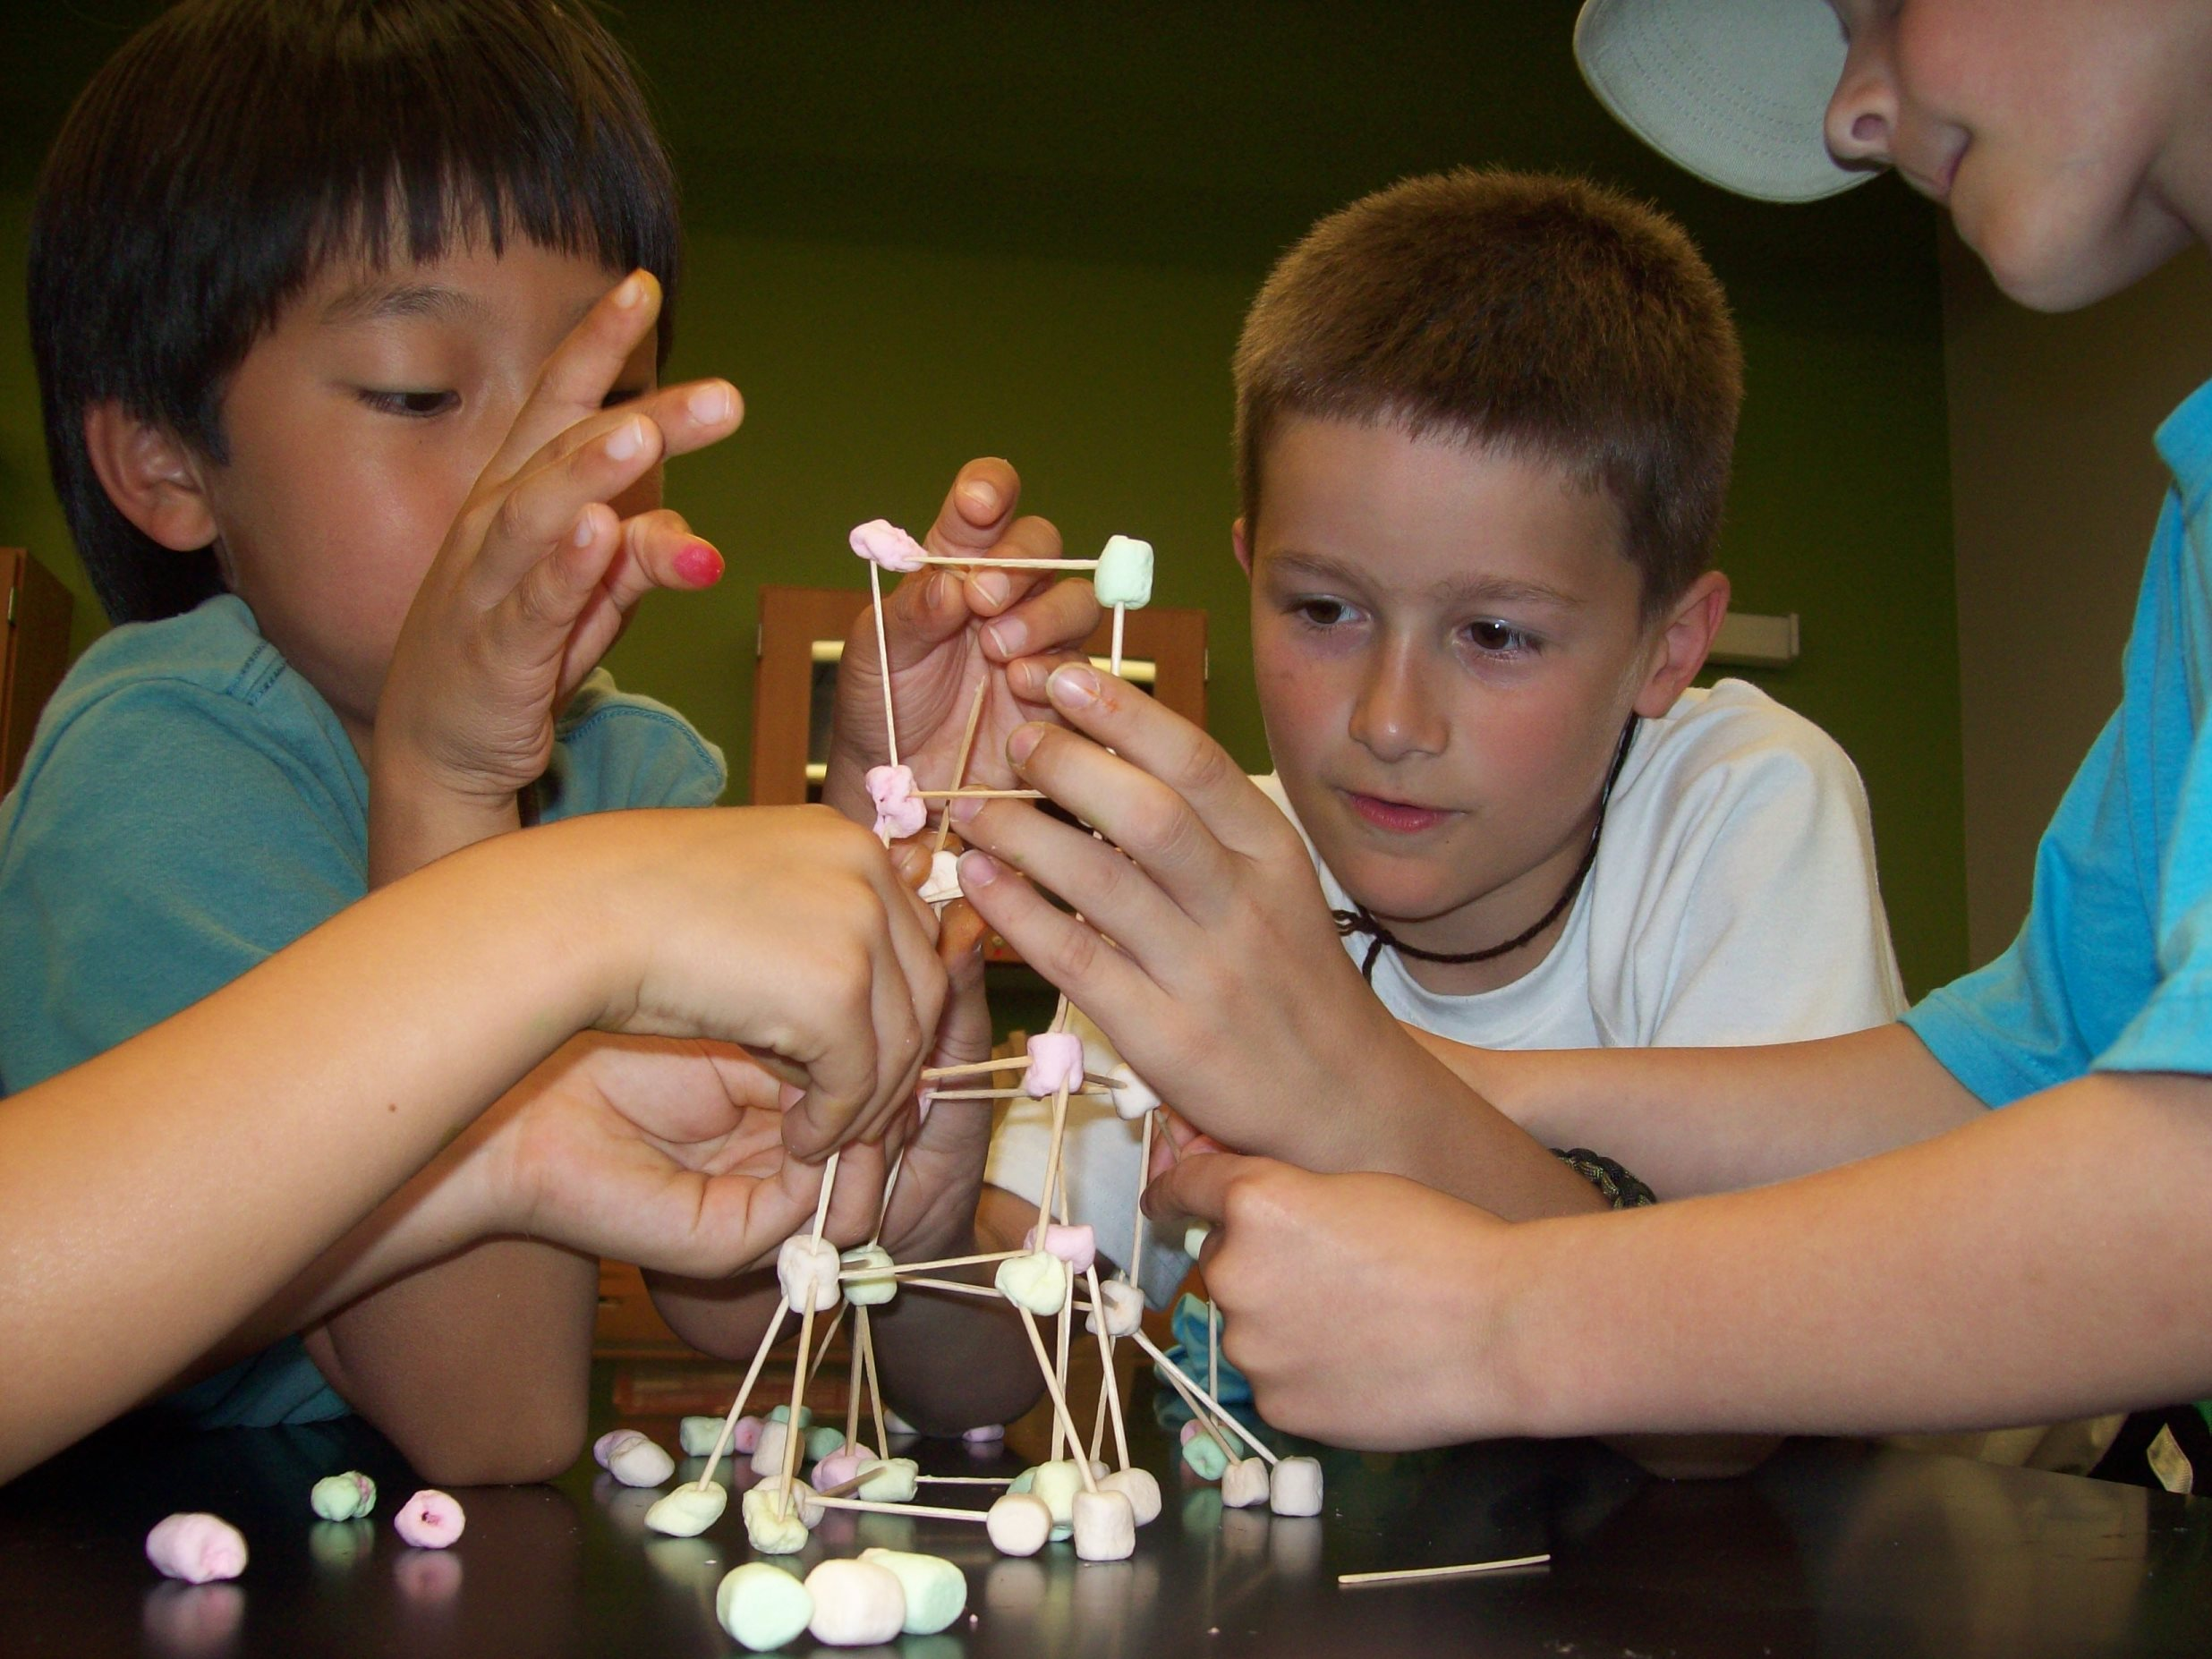 Photo from Great Lakes Science Center summer camp - photo credit Great Lakes Science Center